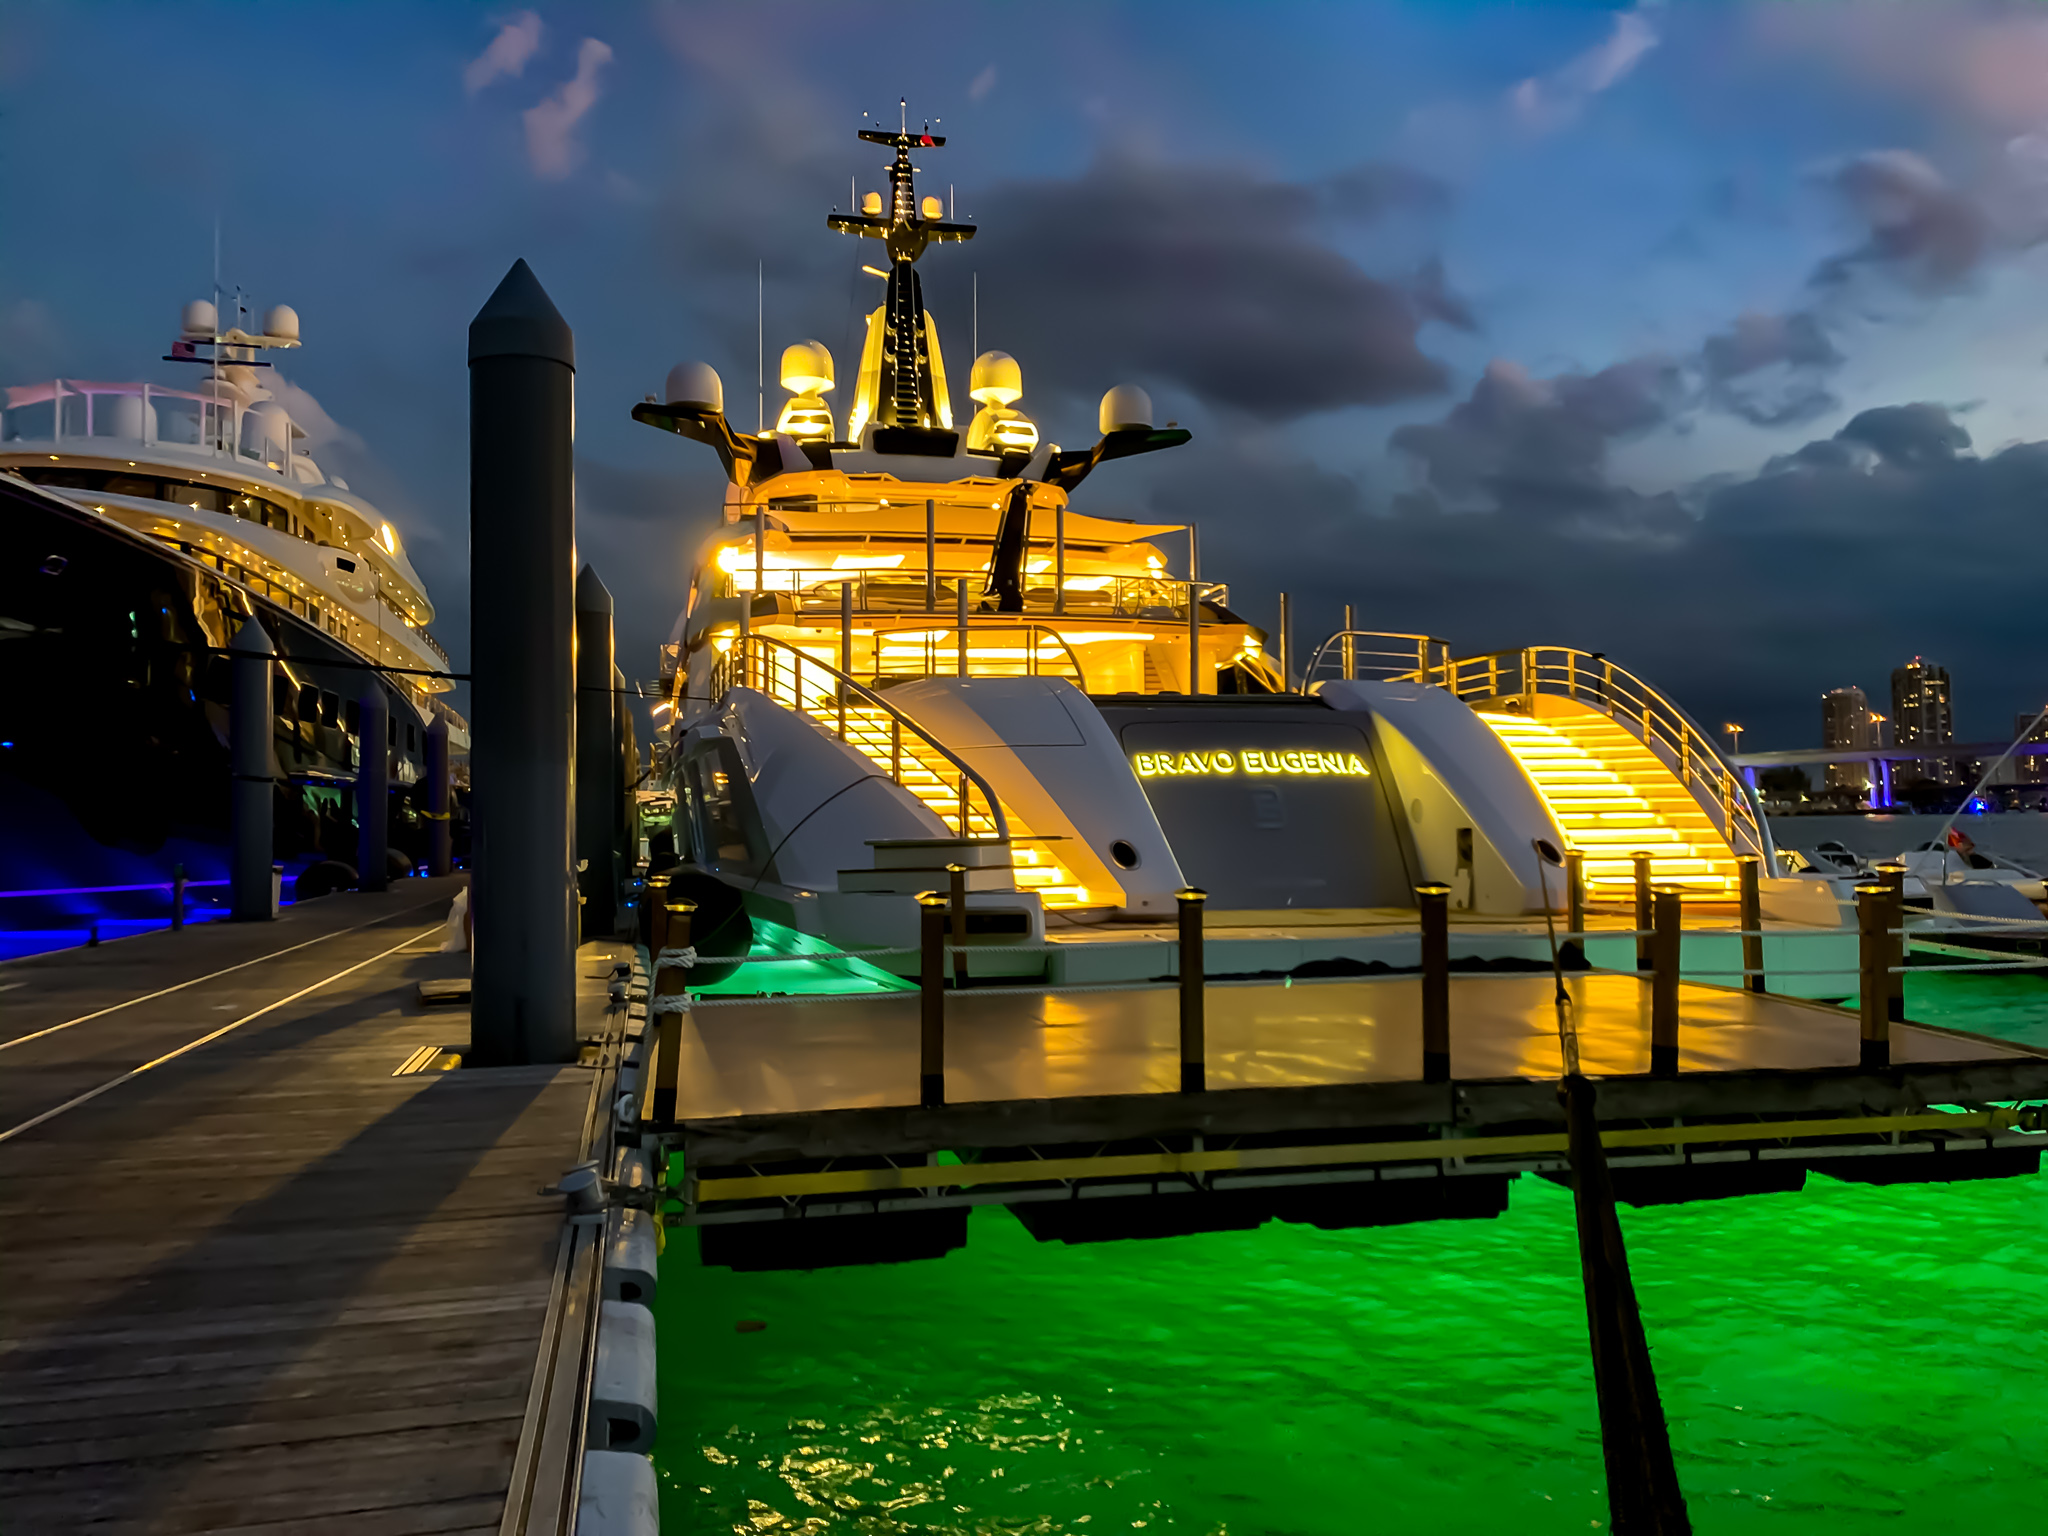 Boarding Platform for Mega-yacht Bravo Eugenia